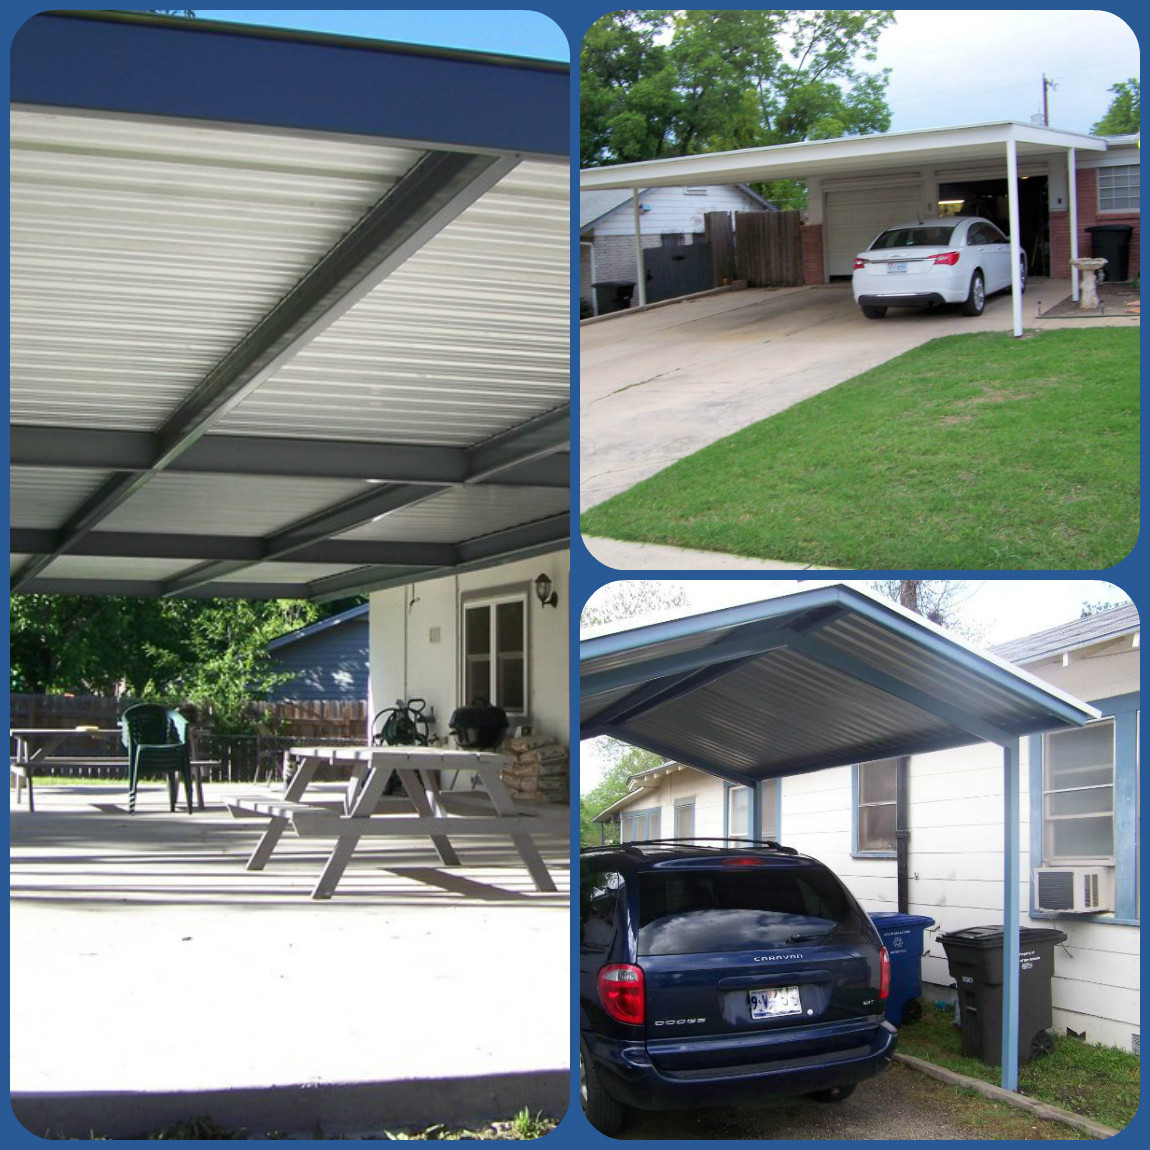 carport patio awning pictures carport patio covers. Black Bedroom Furniture Sets. Home Design Ideas